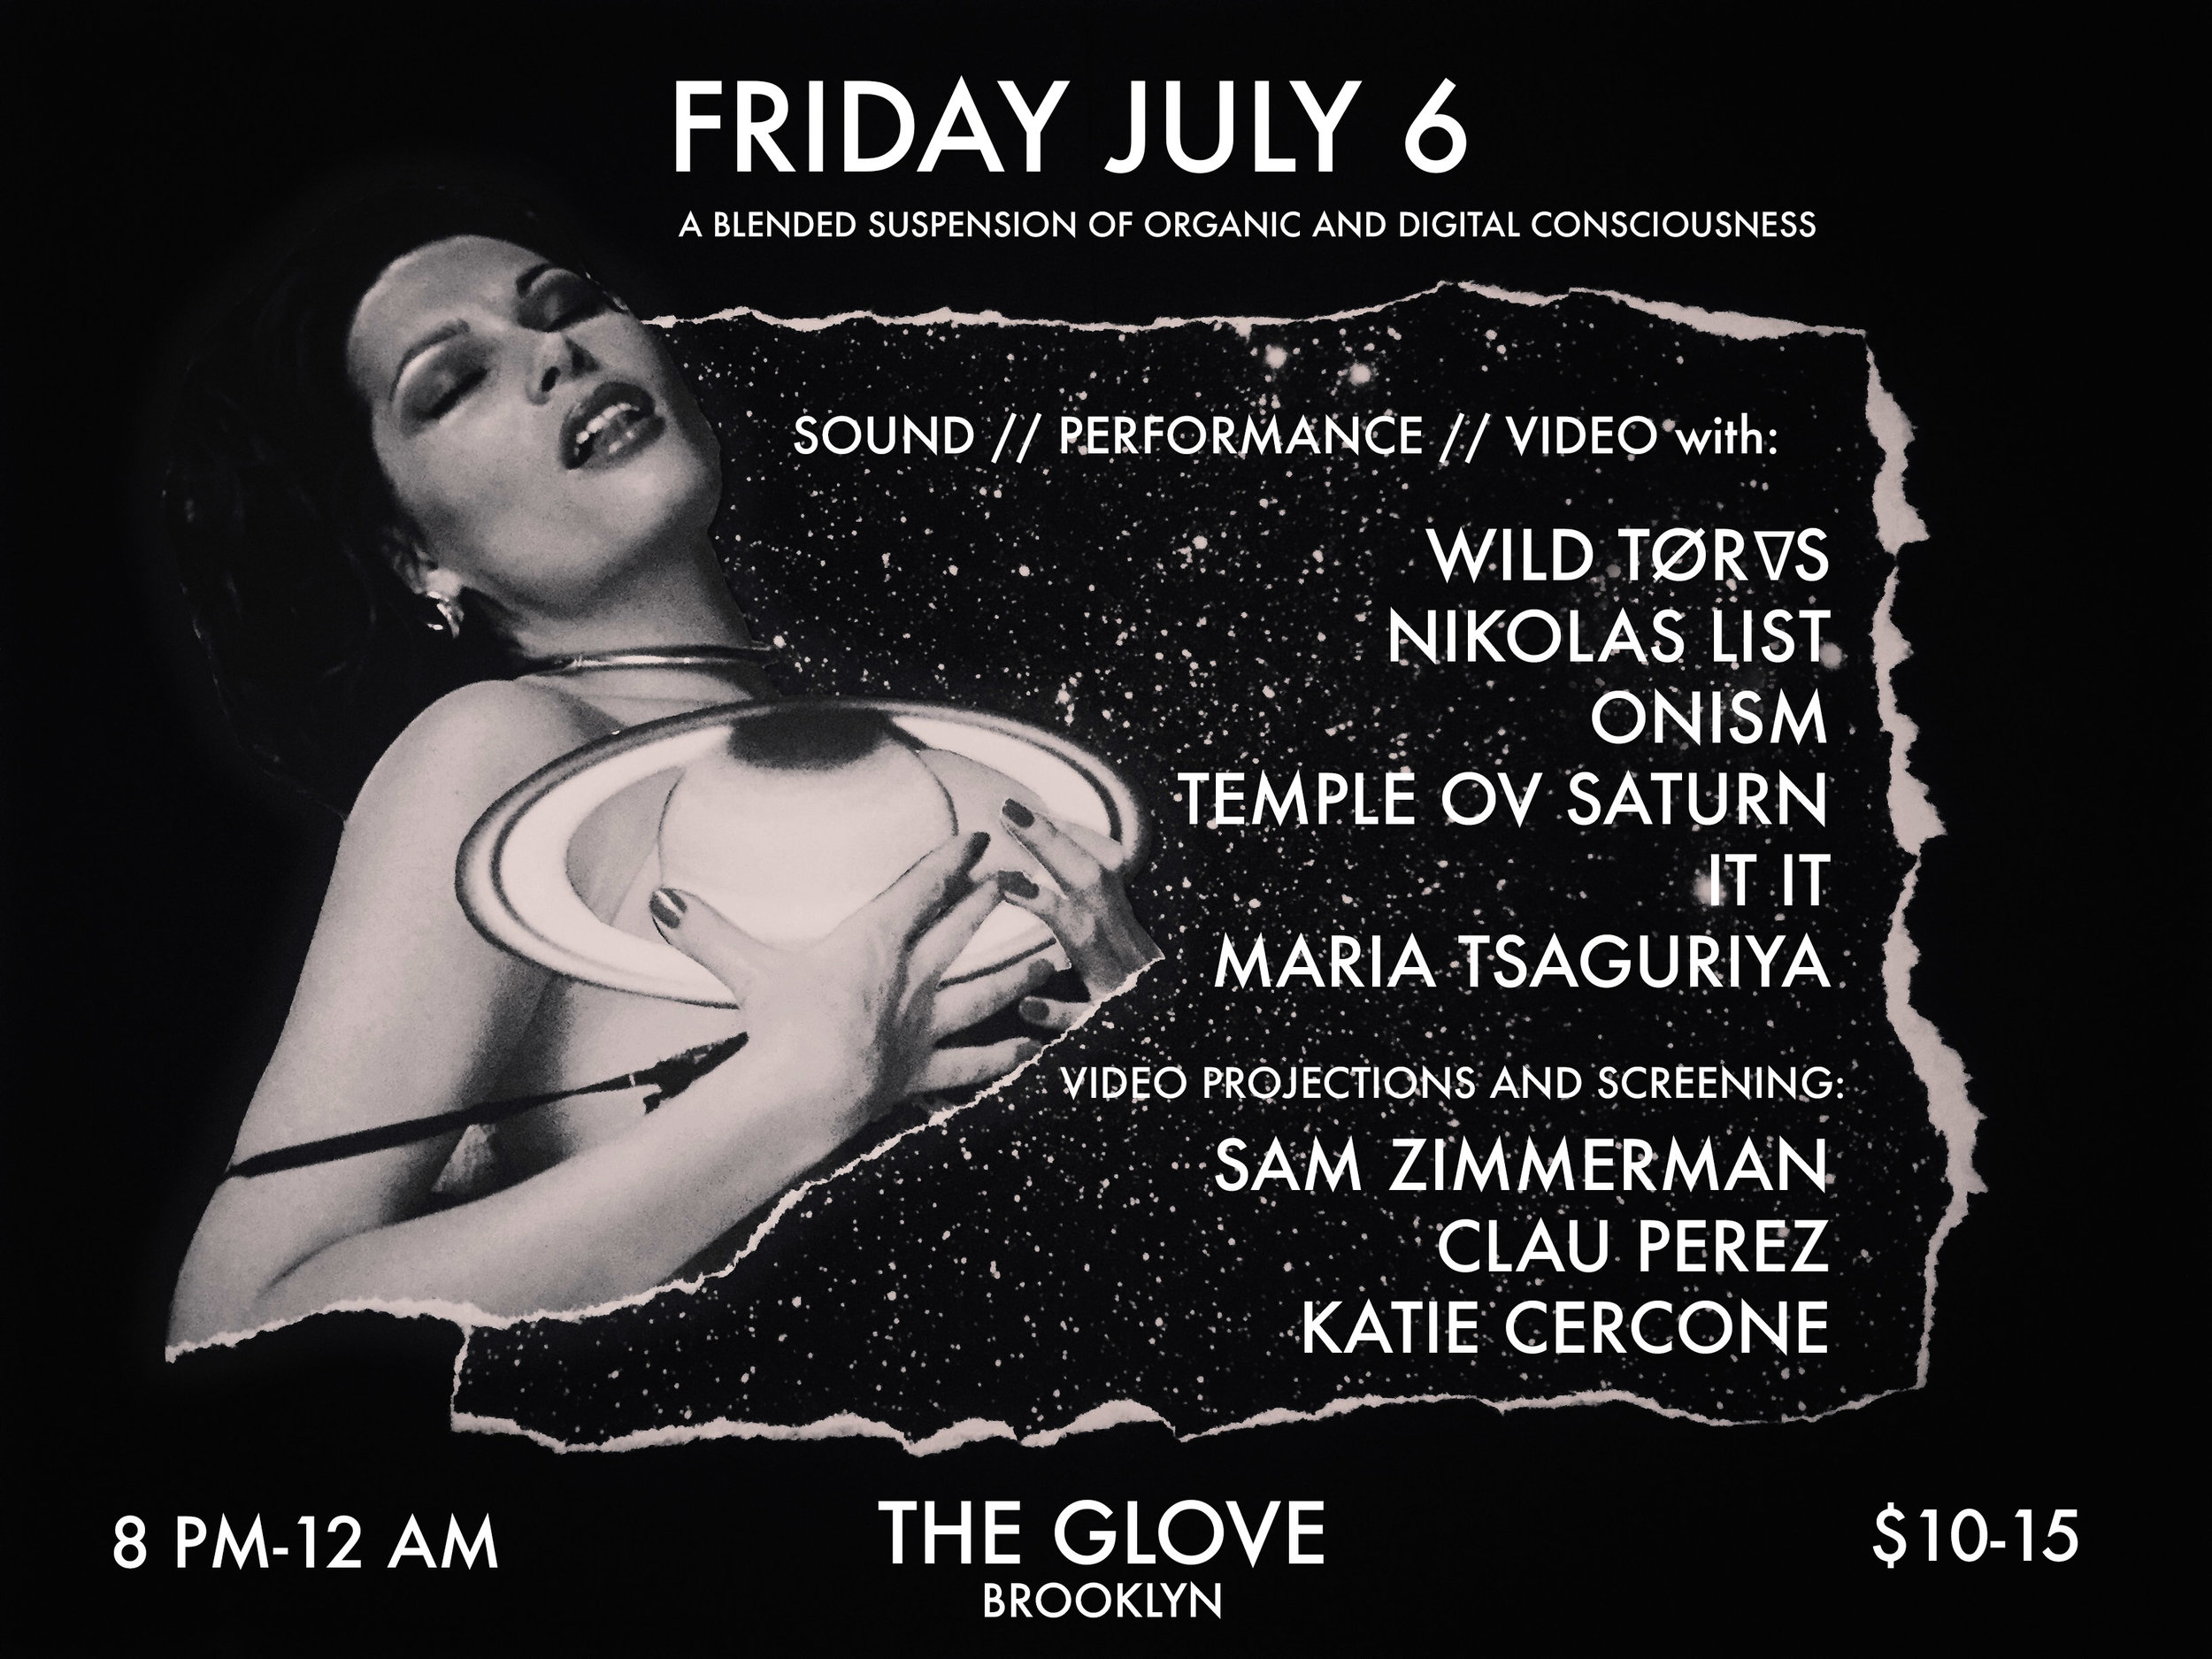 This coming Friday! Temple ov Saturn performance in Brooklyn.